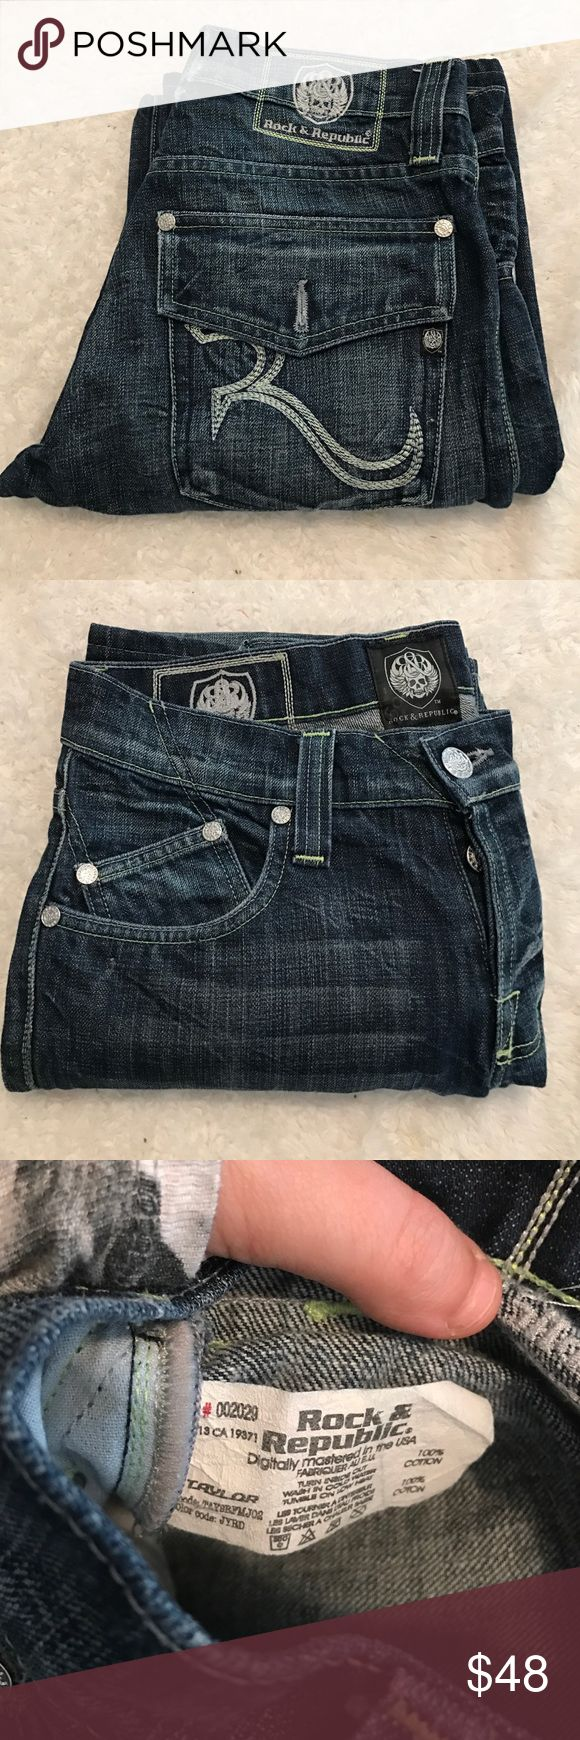 "Men's Rock n Republic Dark Wash ""Taylor"" jeans Great designer jeans by rock and Republic for your fashionable guy. Inseam measures approximately 30 inches Rock & Republic Jeans Bootcut"